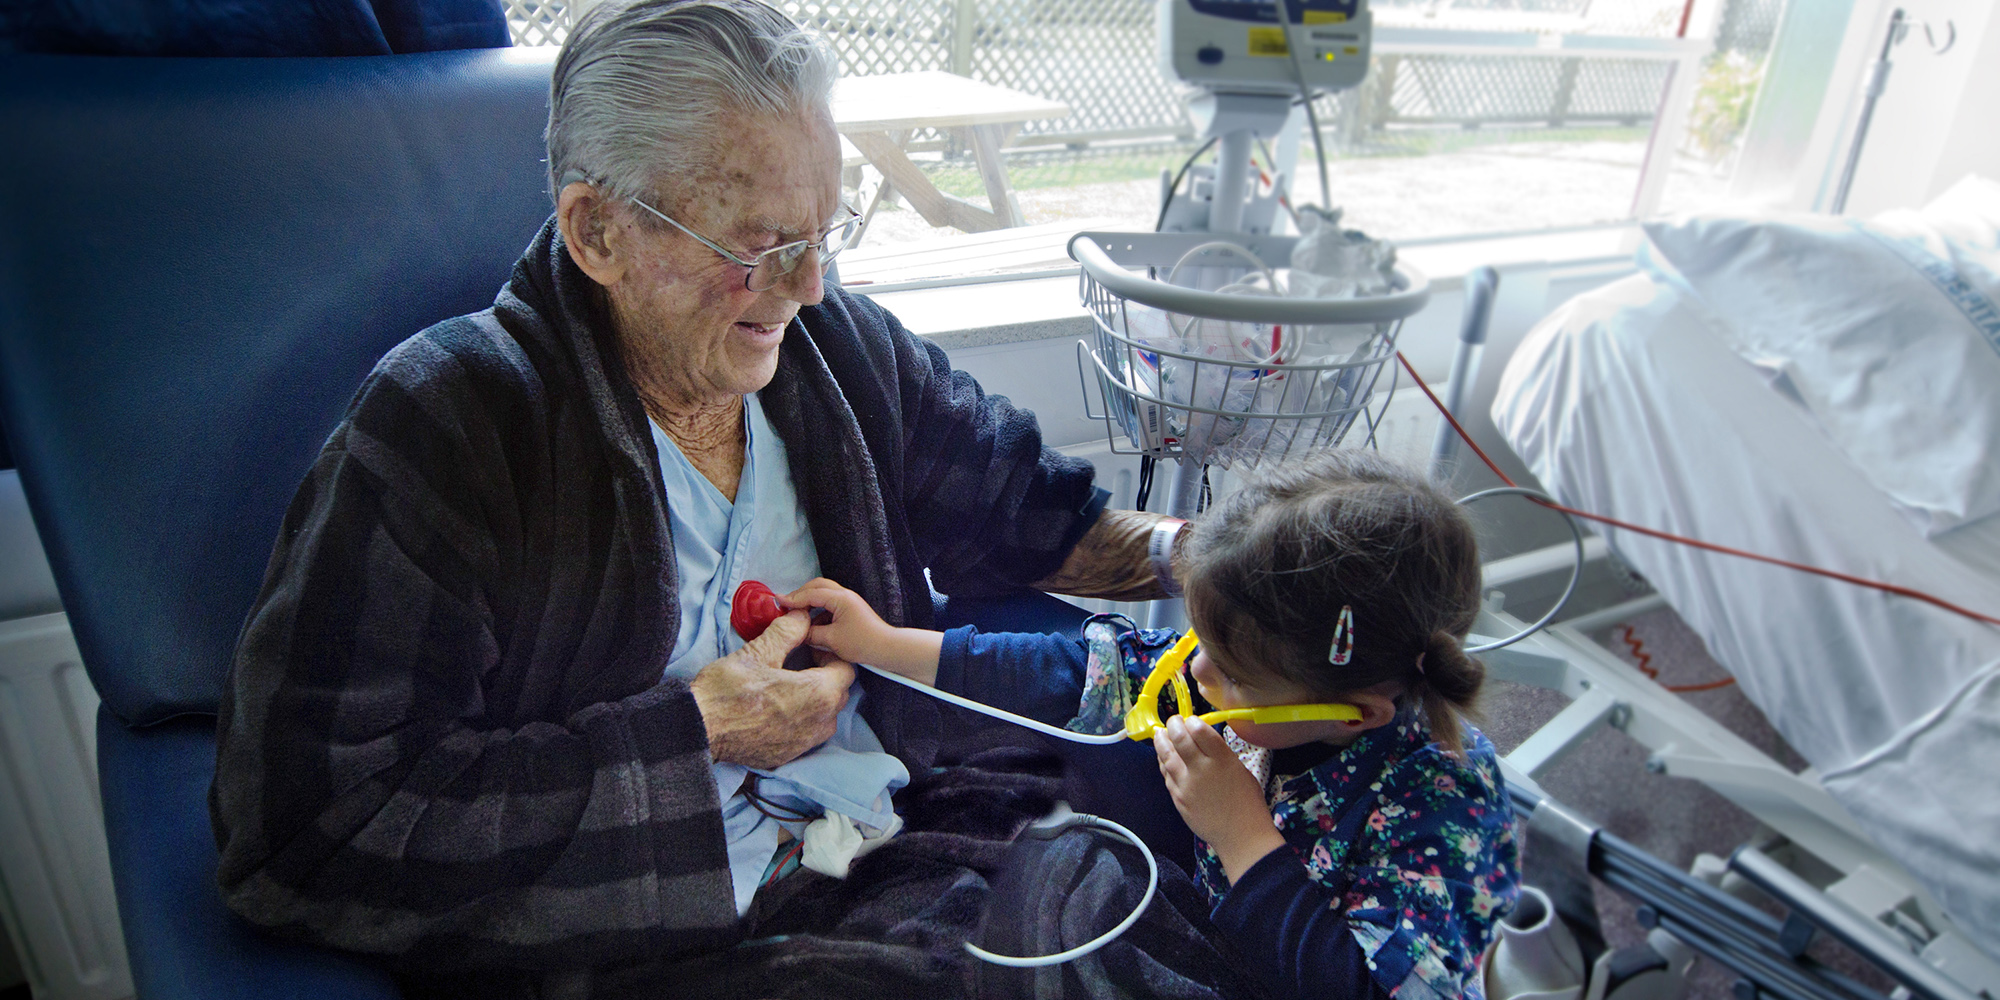 Importance of programs connecting aged care patients and children